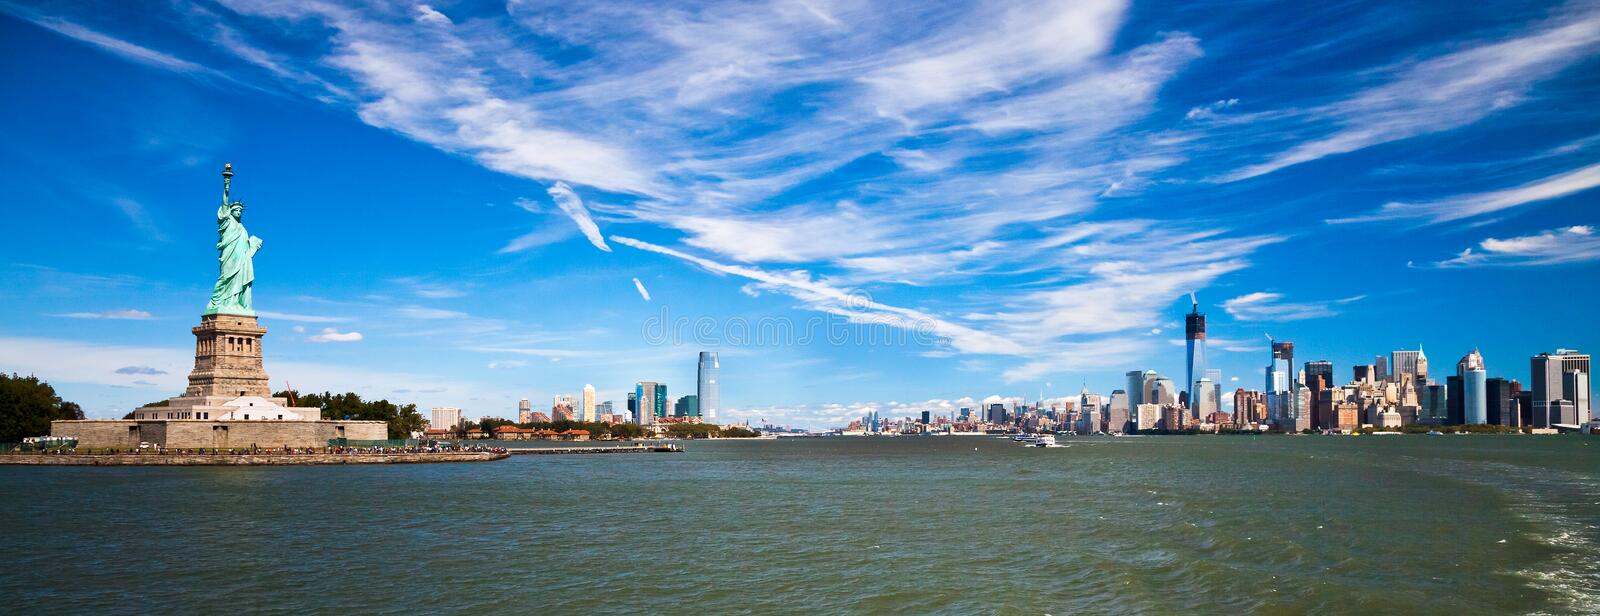 The Statue of Liberty, New York and Jersey City royalty free stock photo